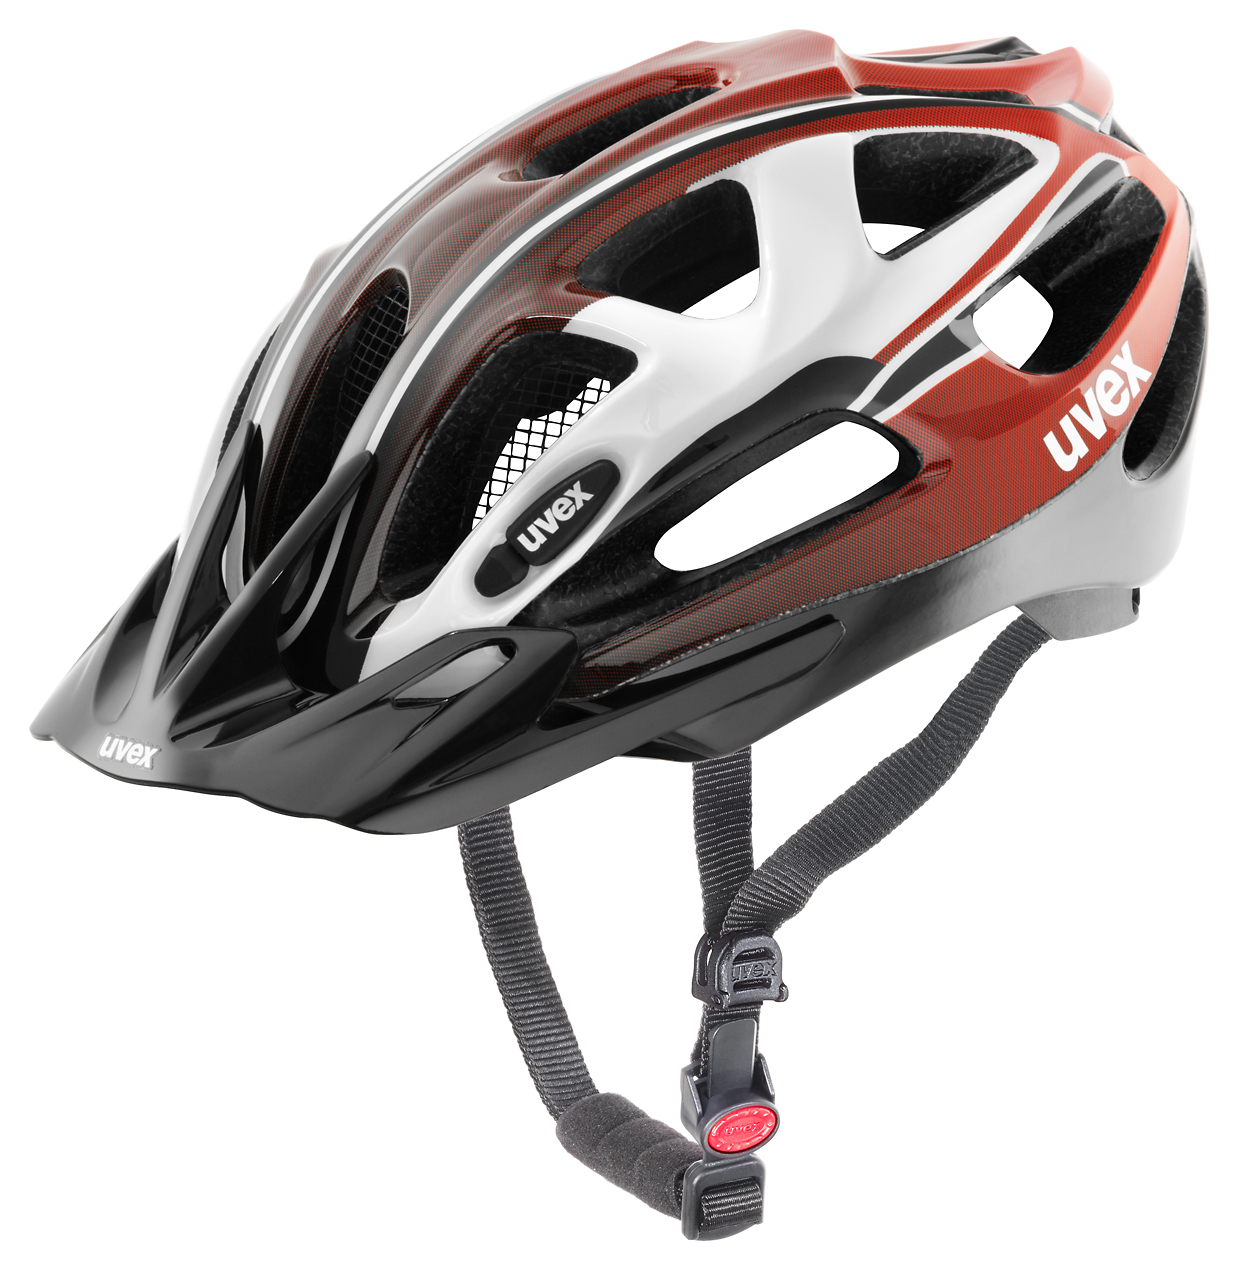 UVEX HELMA SUPERSONIC WHITE-RED-BLACK 57-62 2016